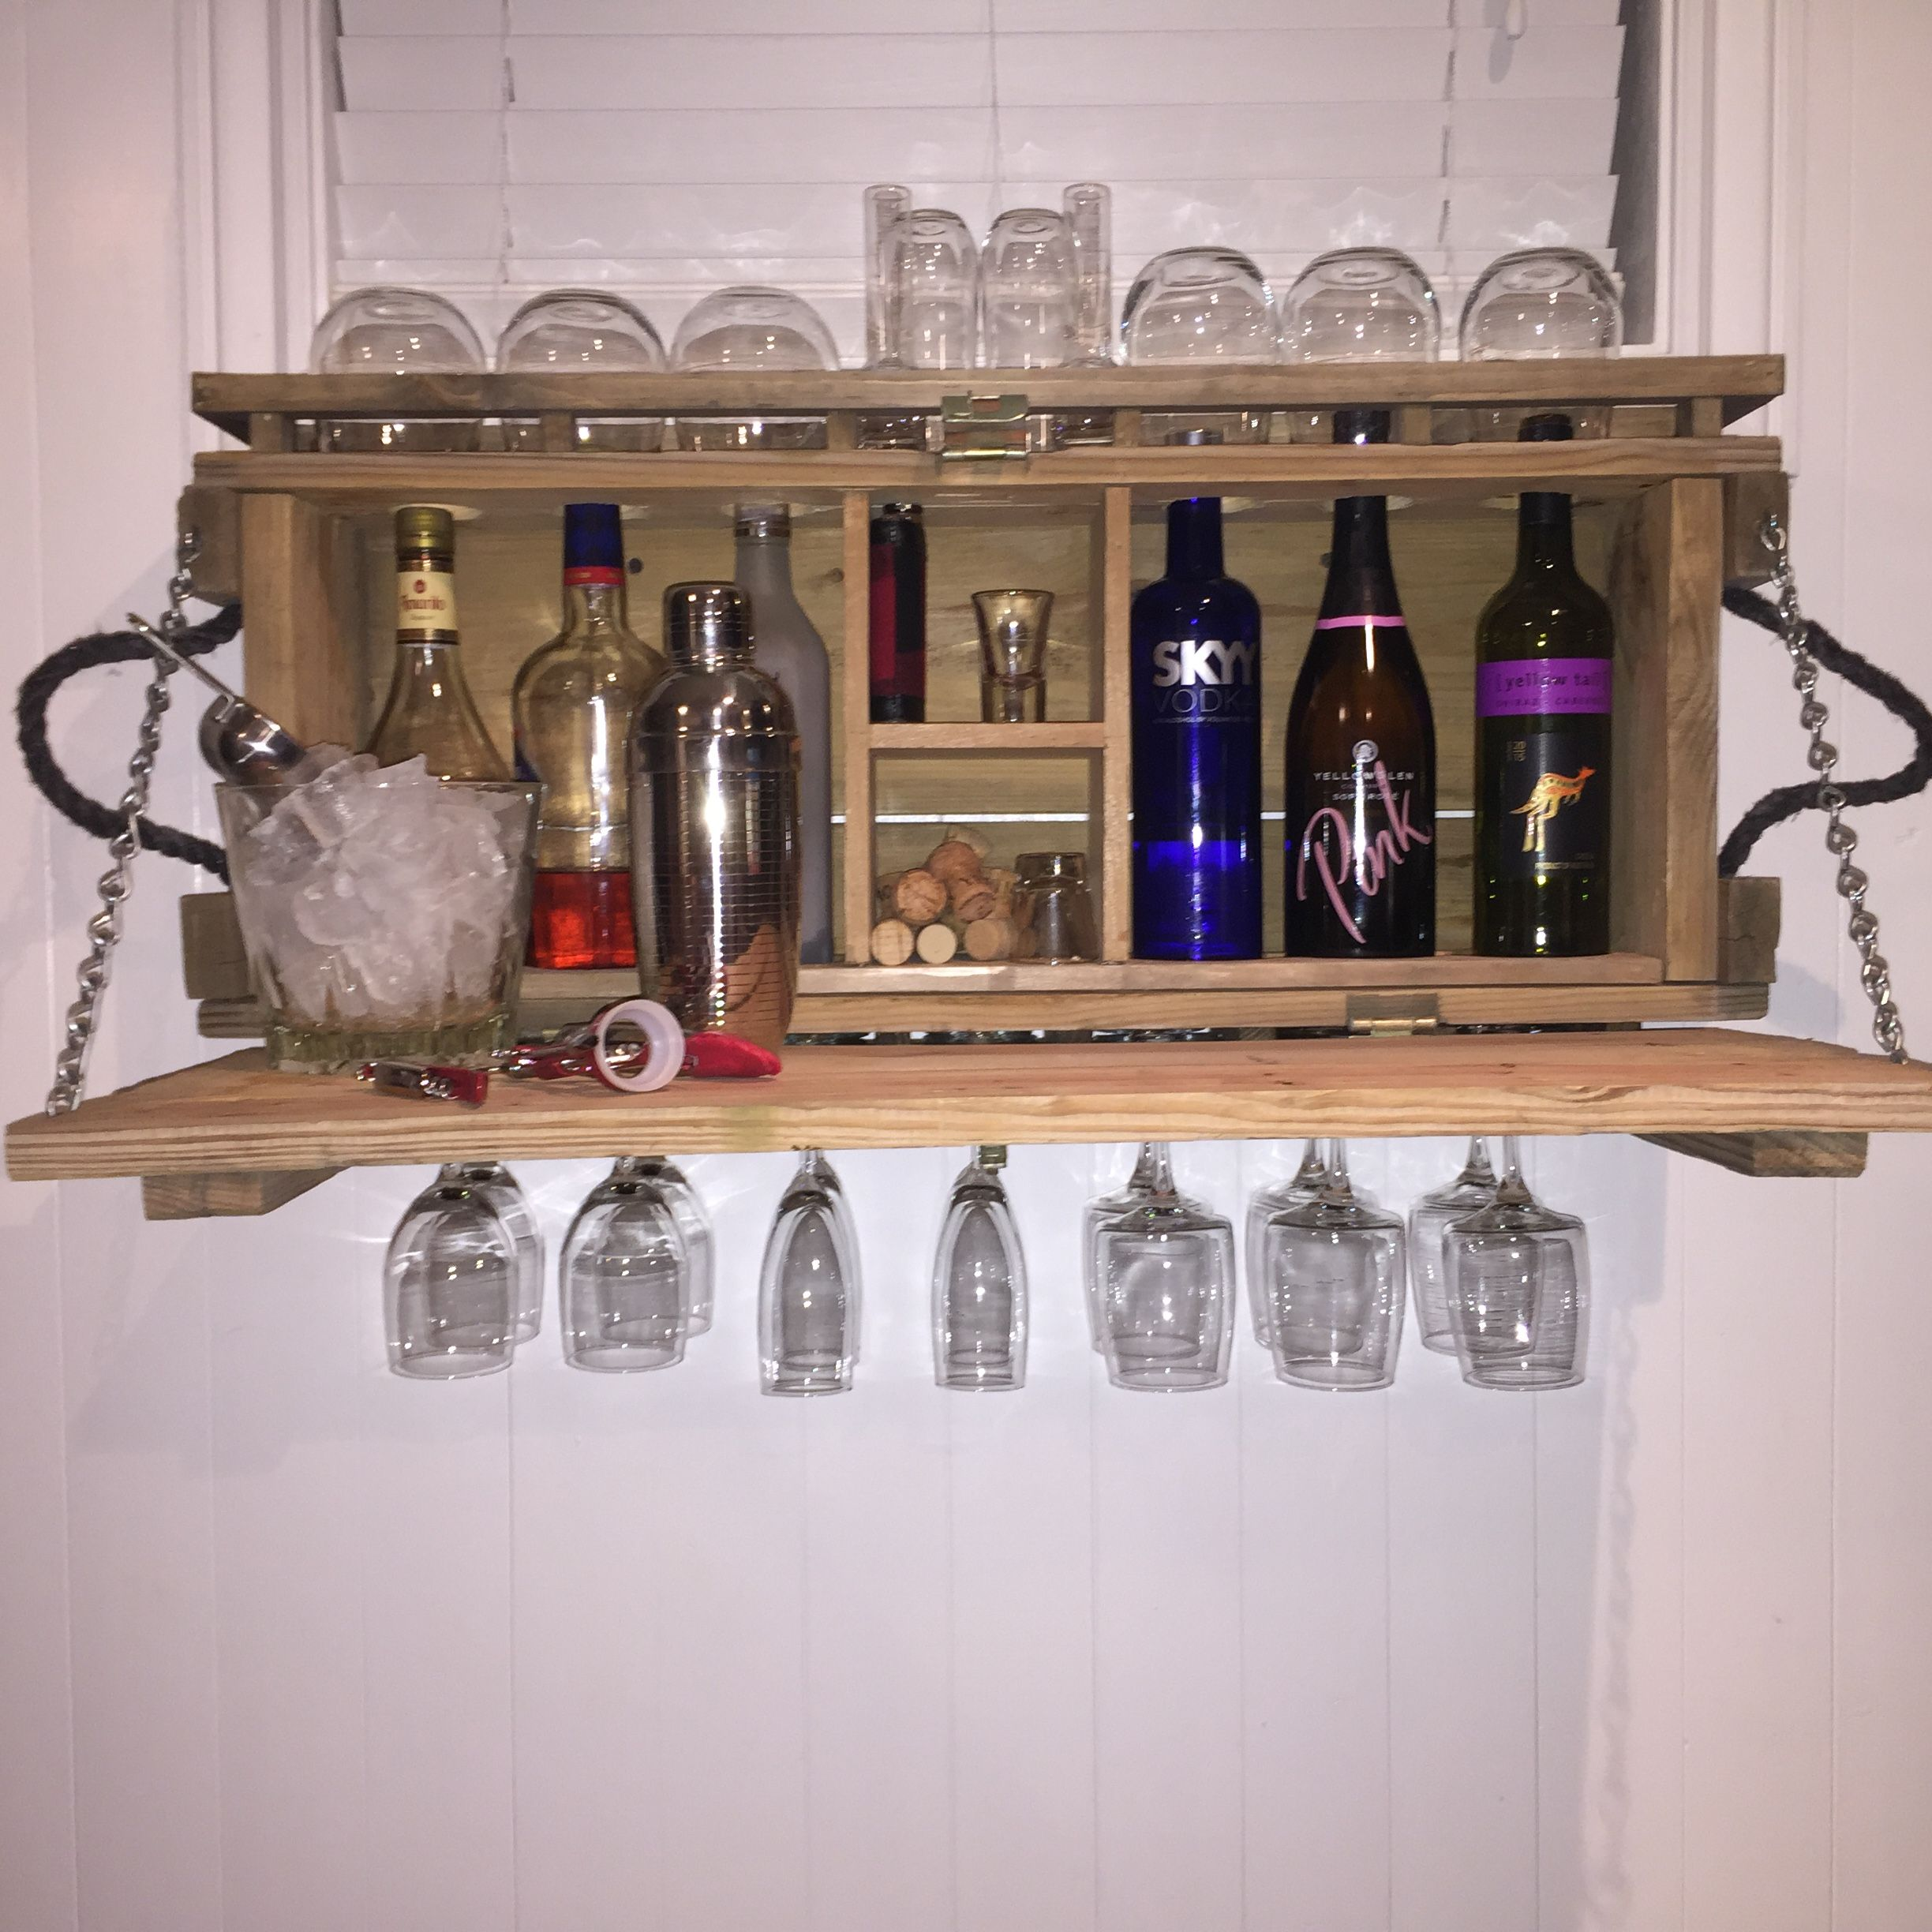 Ammo box minibar wine rack cool diy pinterest wine for Crate wine rack diy